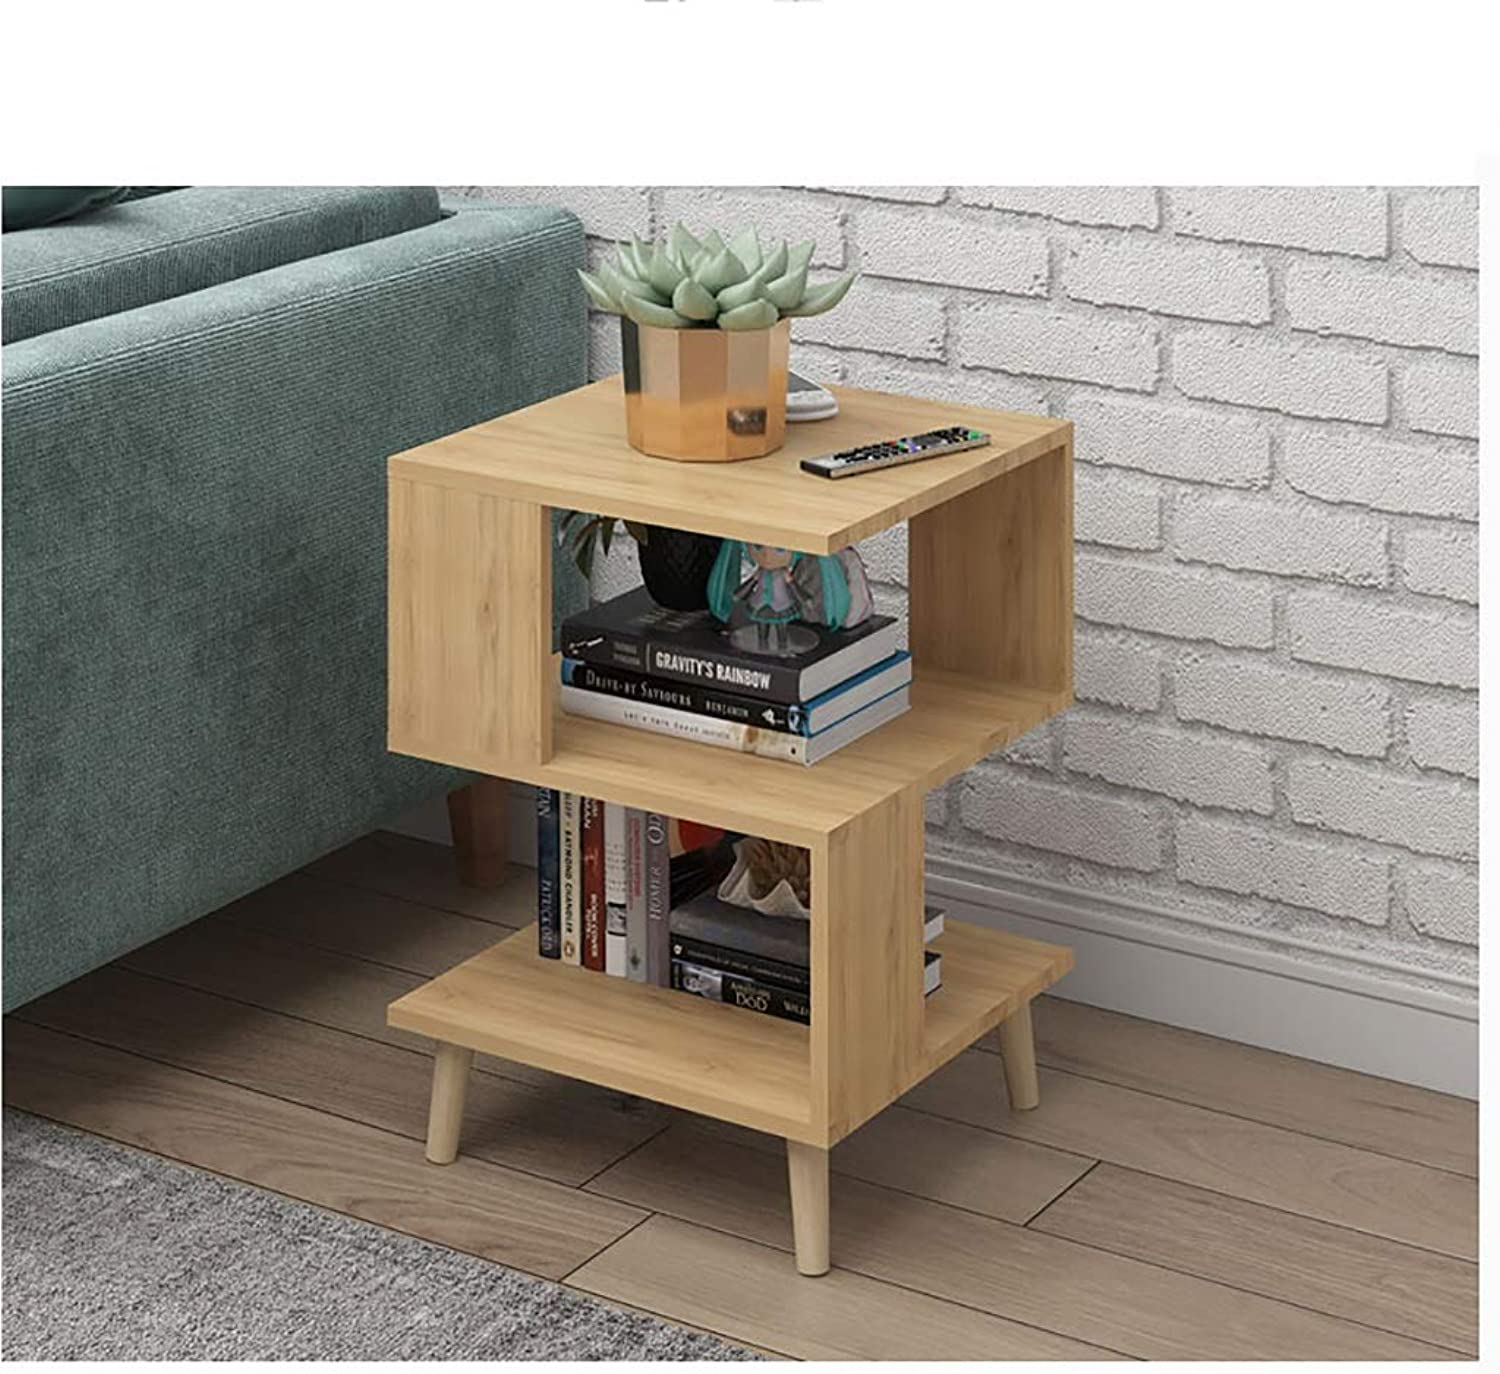 Creative, Unique Square 3-Tier Shelf, Side End Table with Storage Rack, Sofa Side Table Storage Rack of Low Shelf for Bedroom Decor Living Room Furniture Small Coffee Table Bed-Side Accent Table